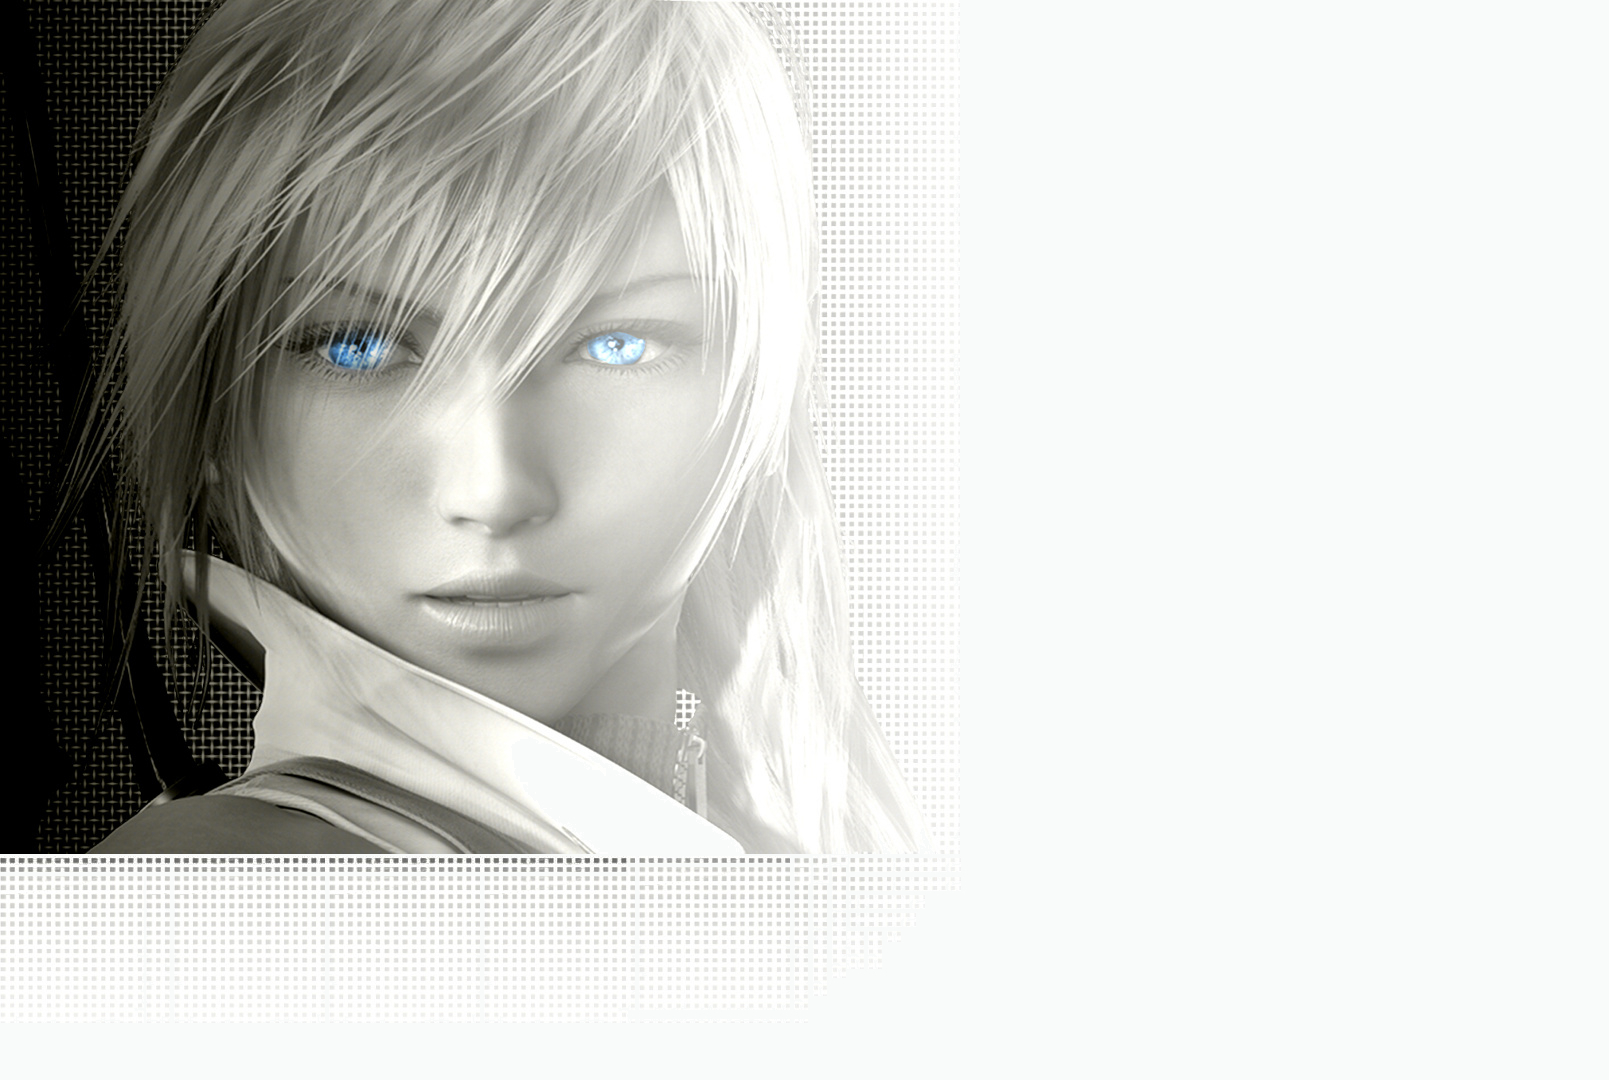 monochrome best game claire HD Wallpaper